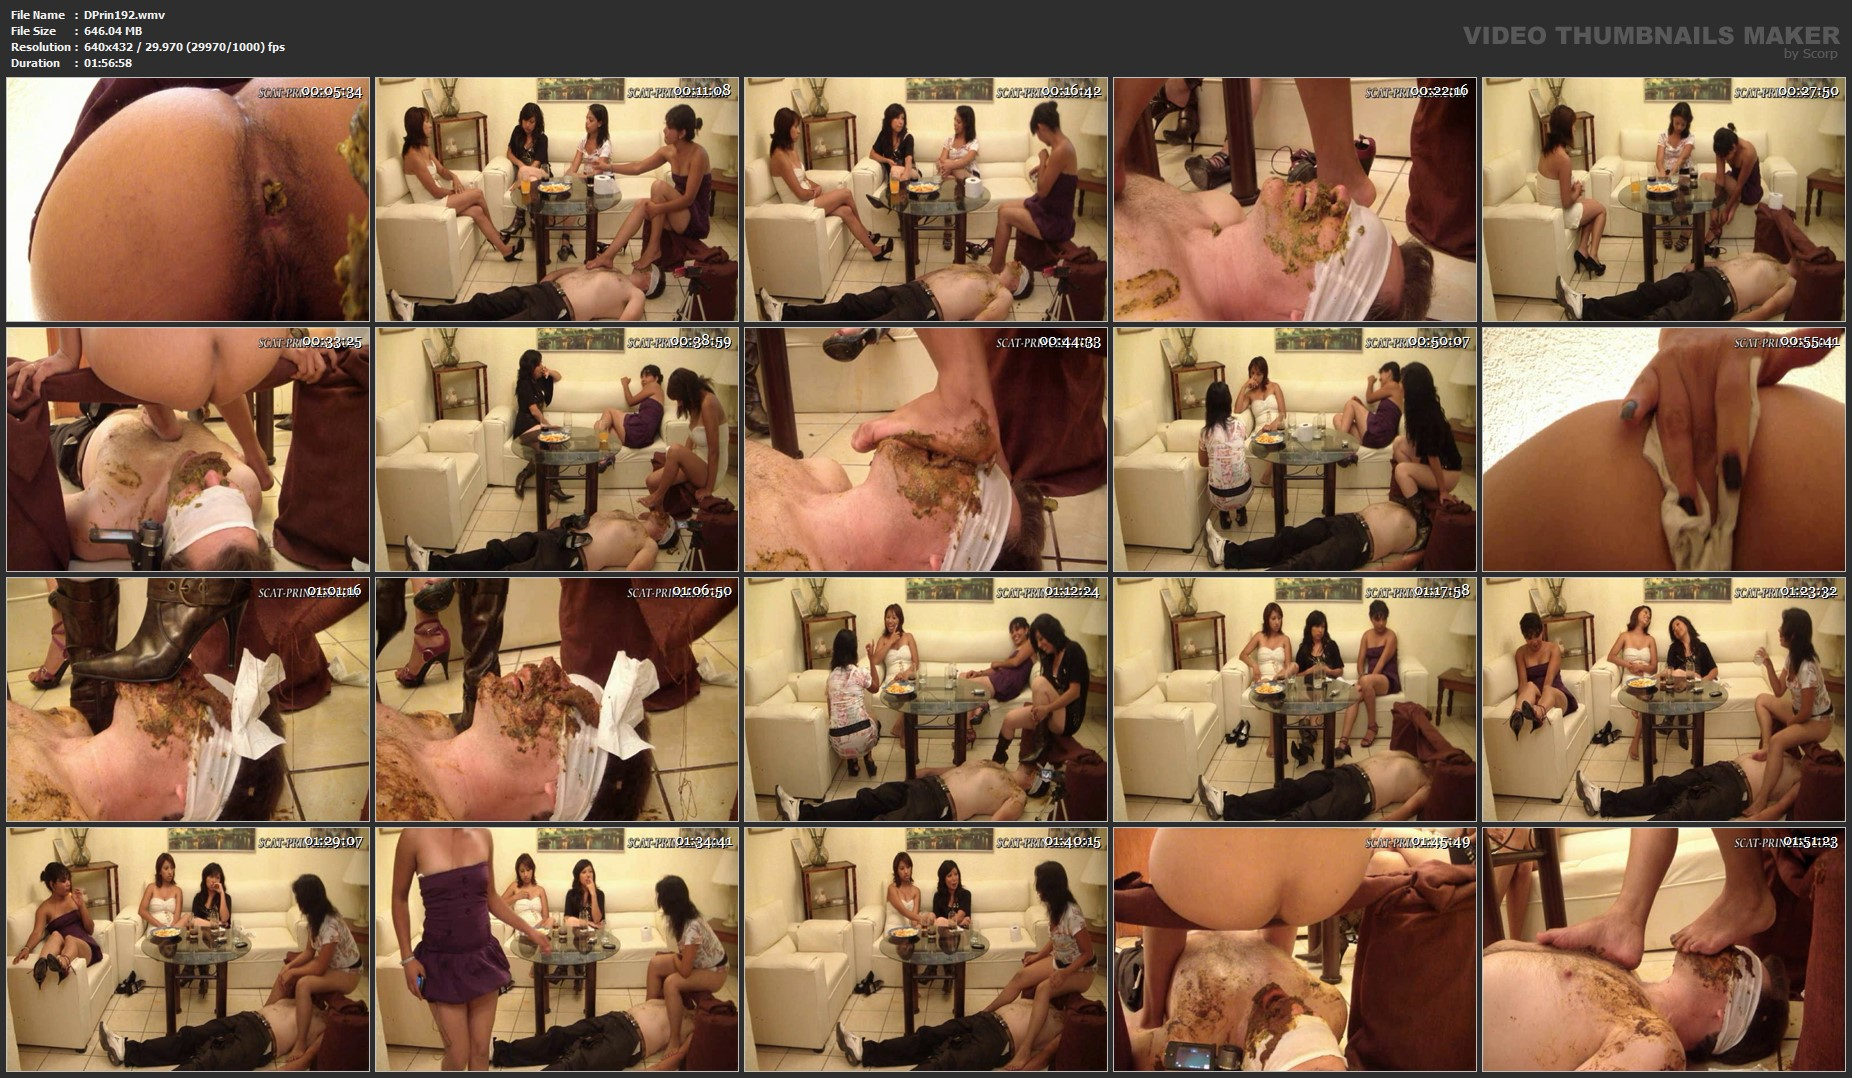 [DOM-PRINCESS] Toiletslaves know what to do SD Subt[4] [SD][432p][WMV]